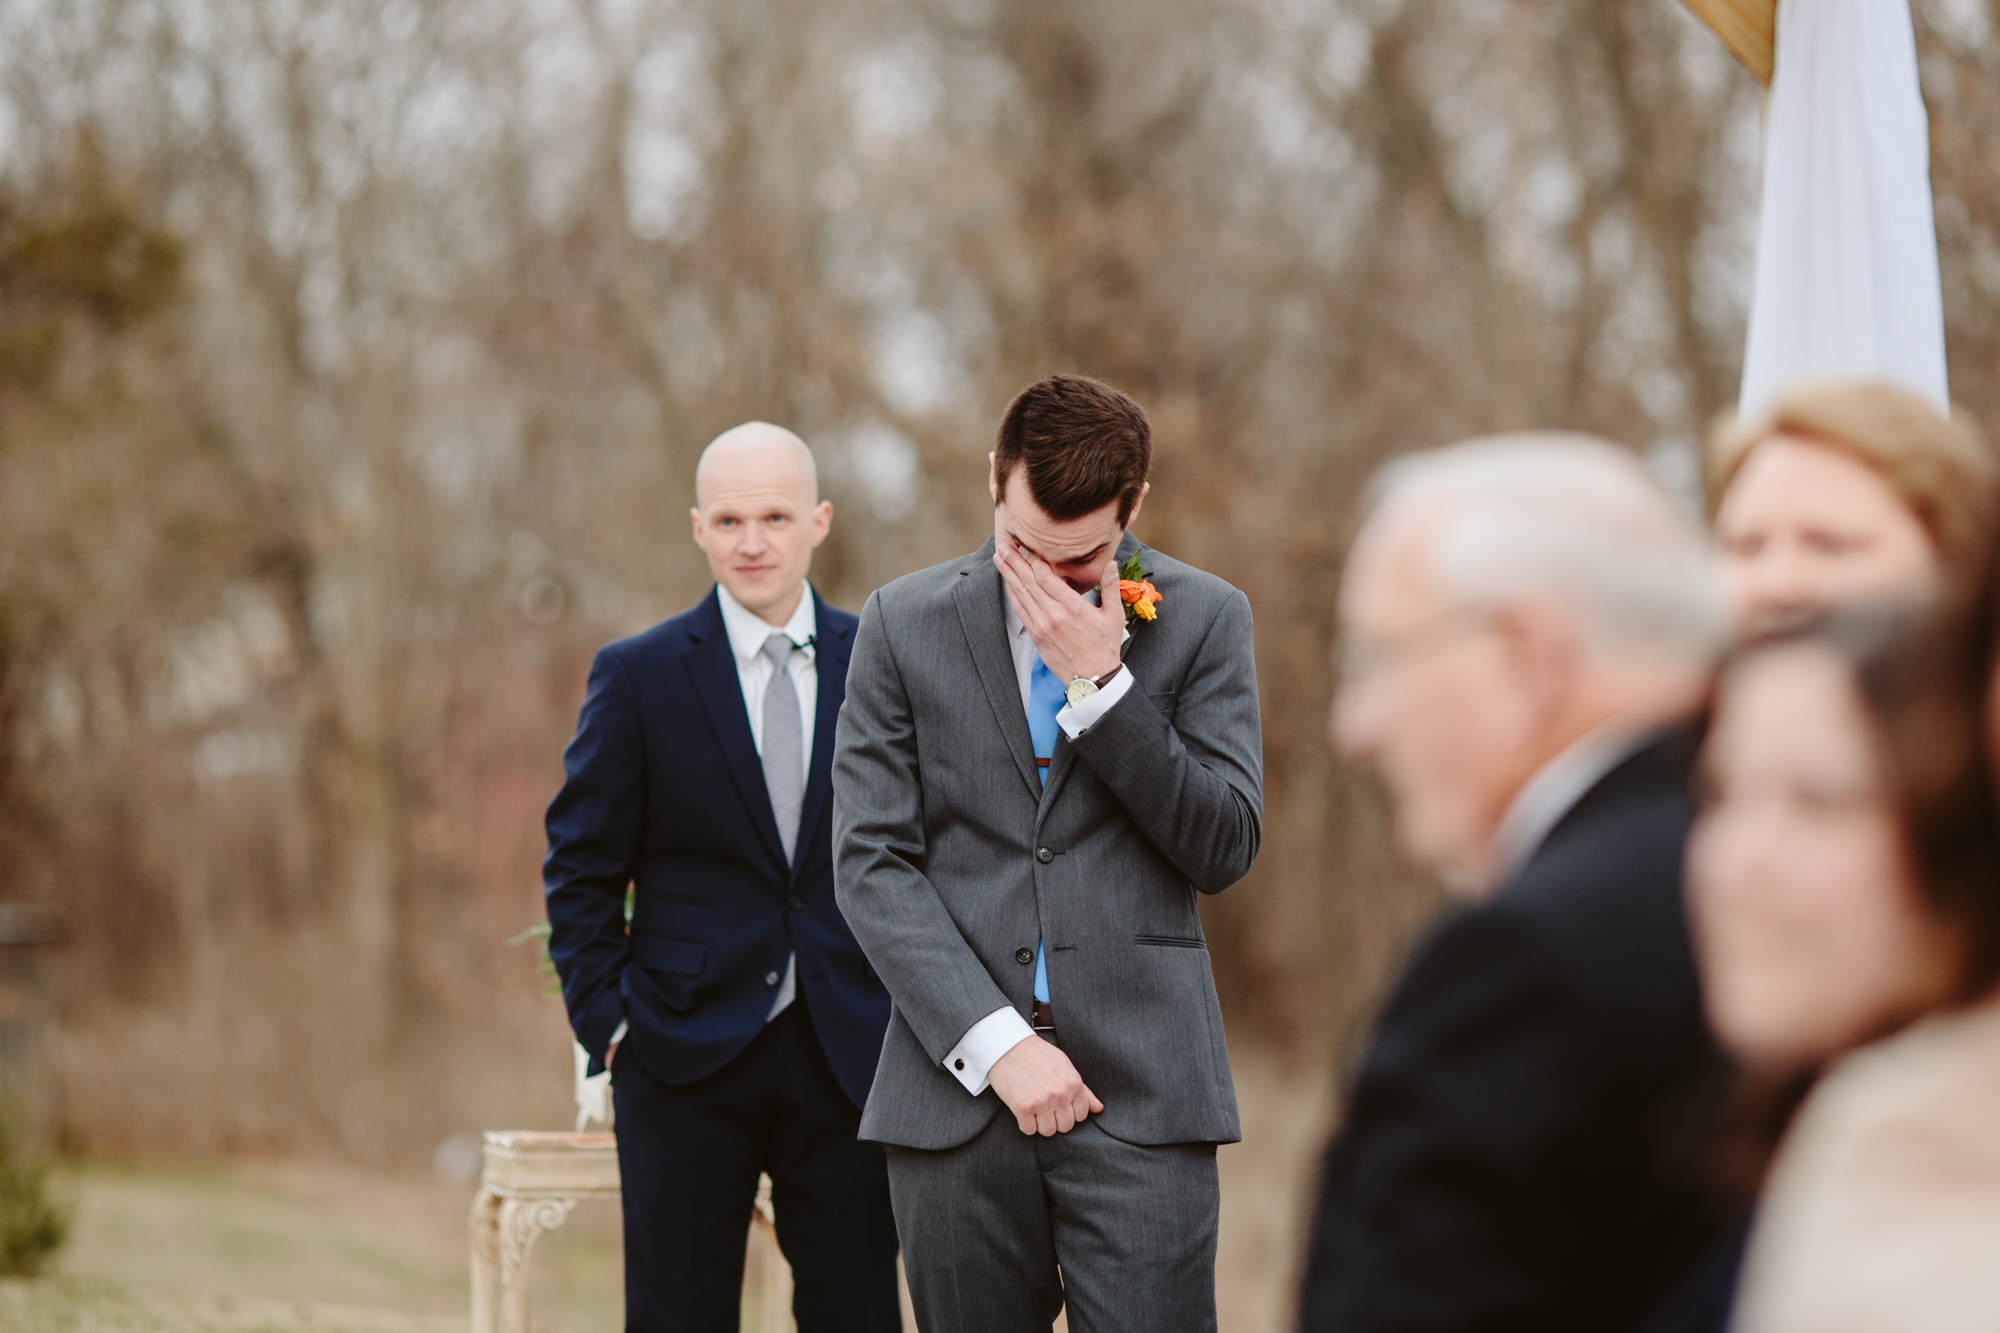 Groom seeing his bride for the first time down the aisle outside at the stone house of st charles wedding venue